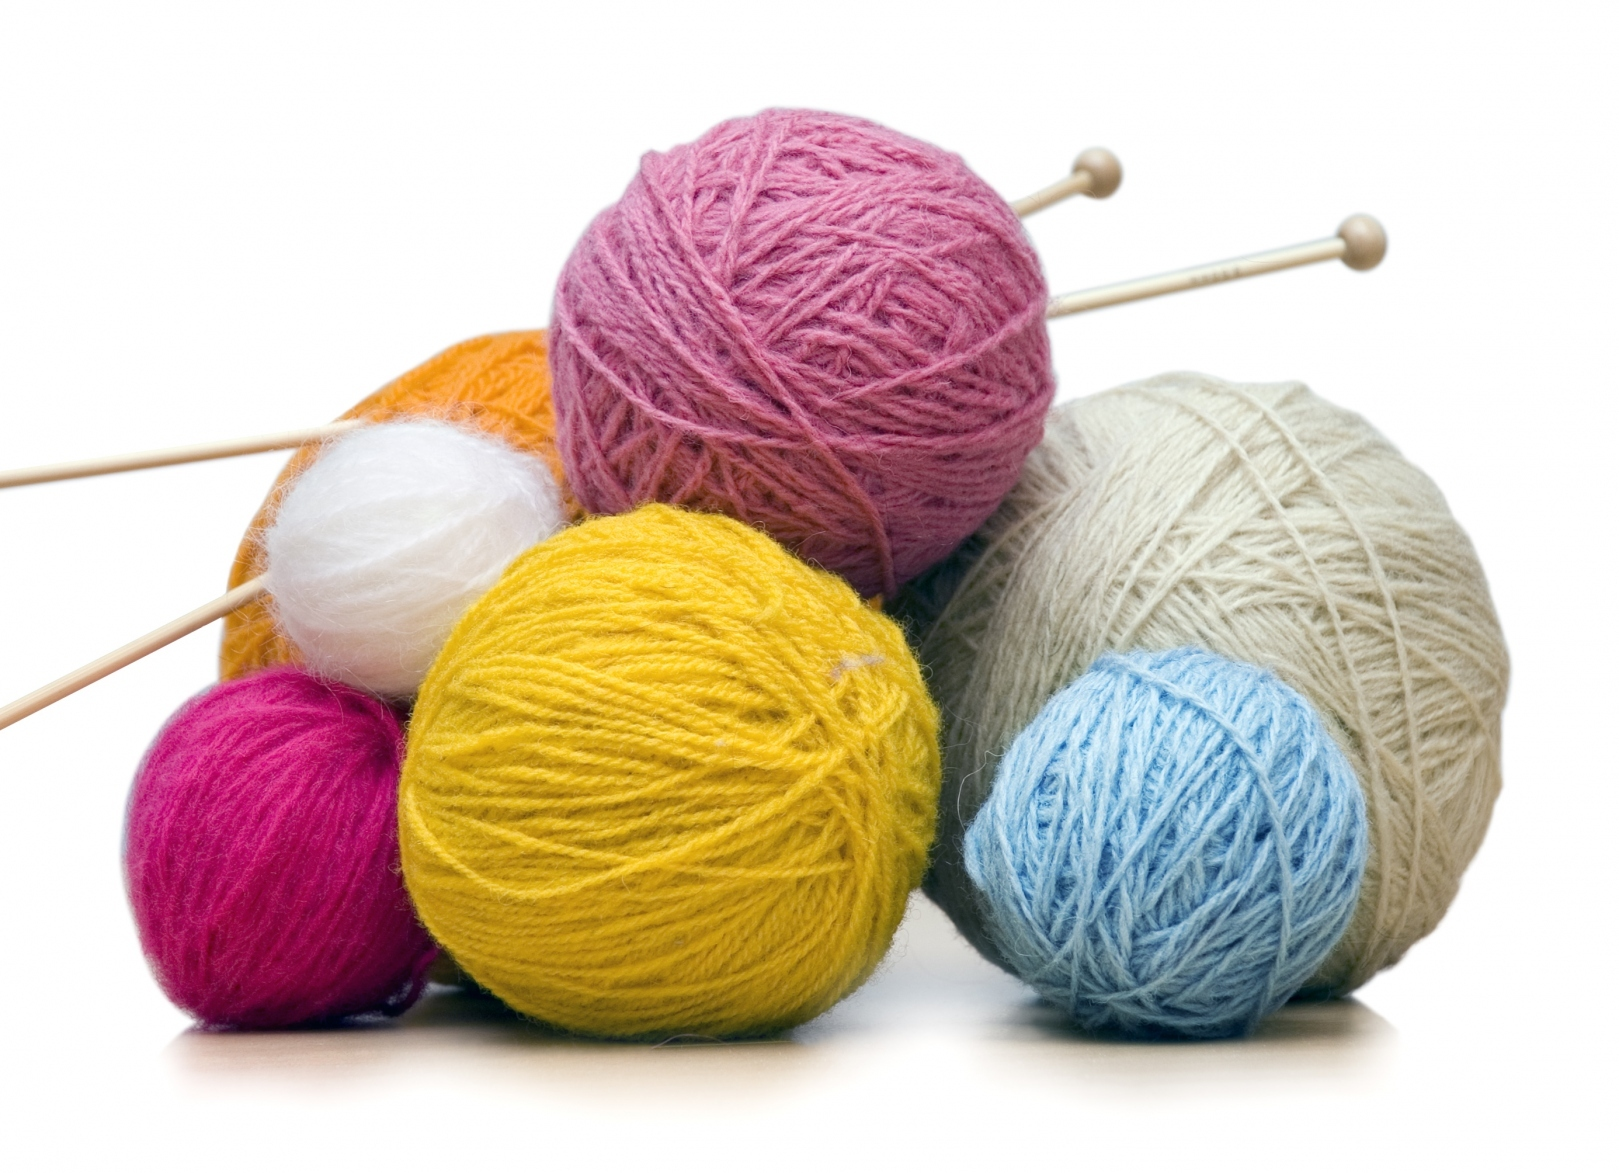 Yarn pictures